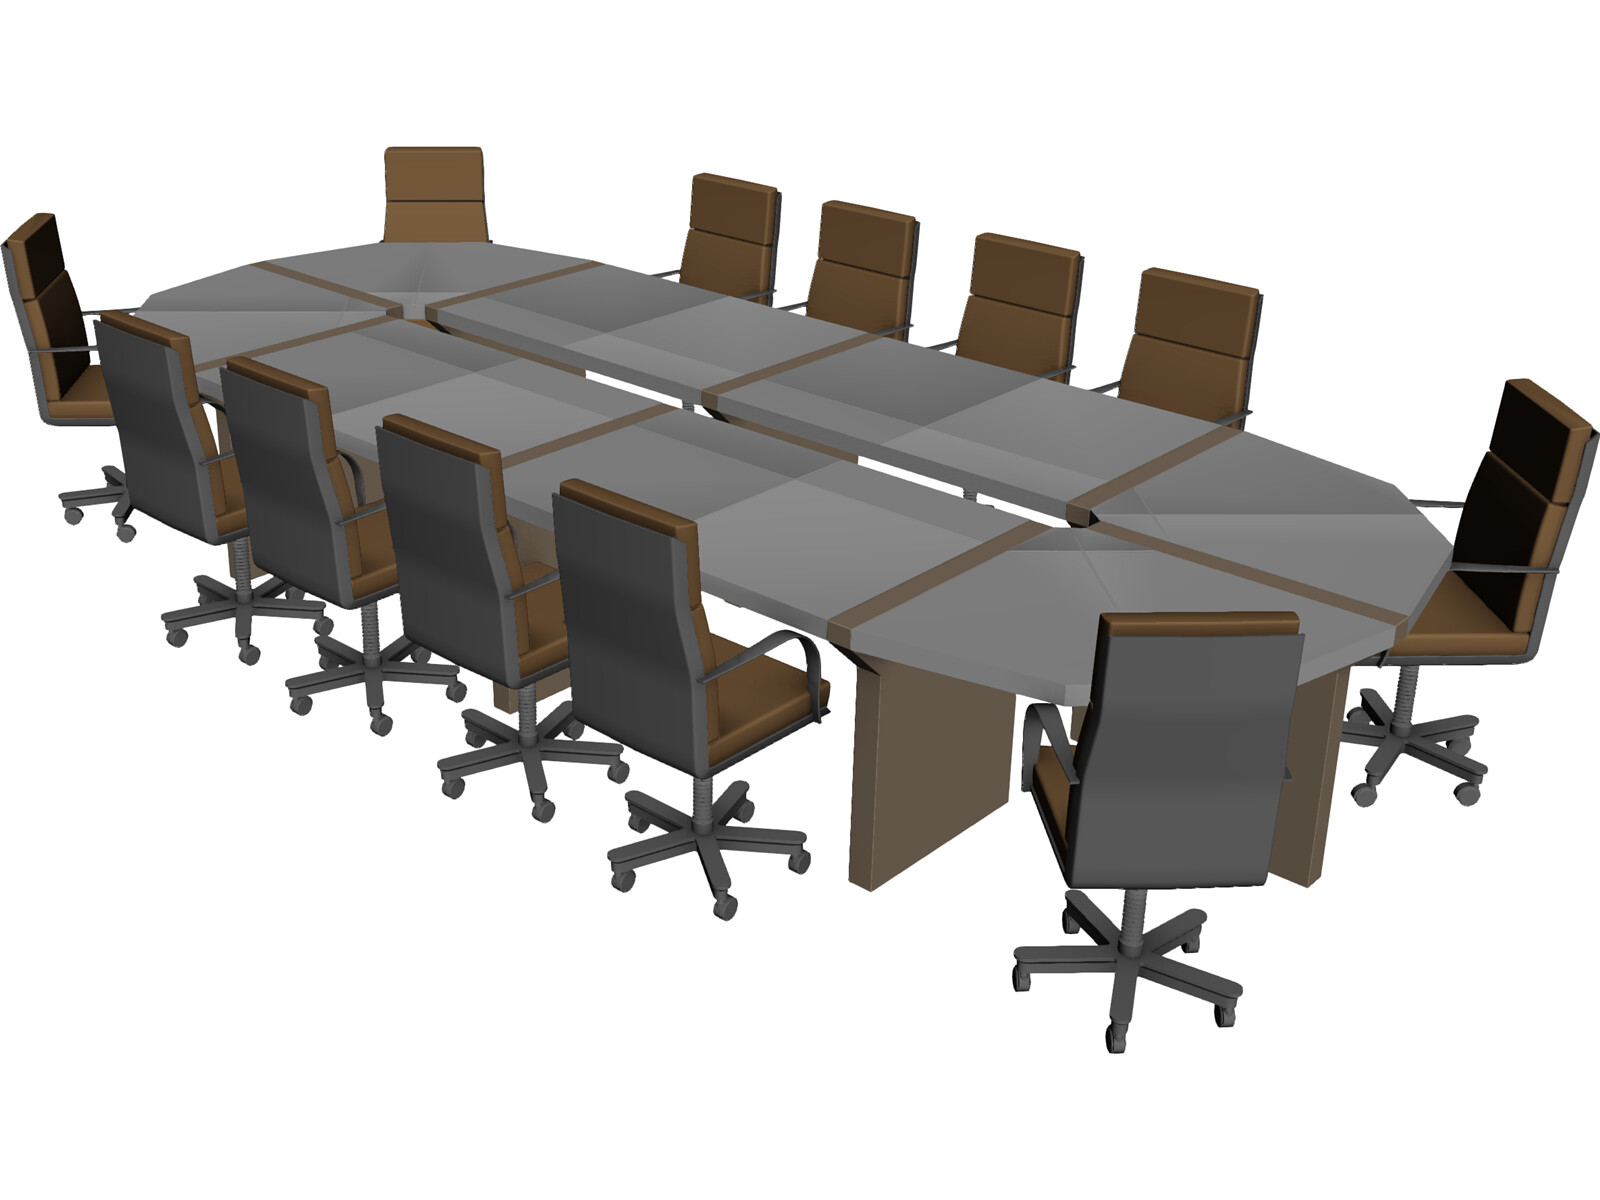 conference table 3d model 3d cad browser. Black Bedroom Furniture Sets. Home Design Ideas